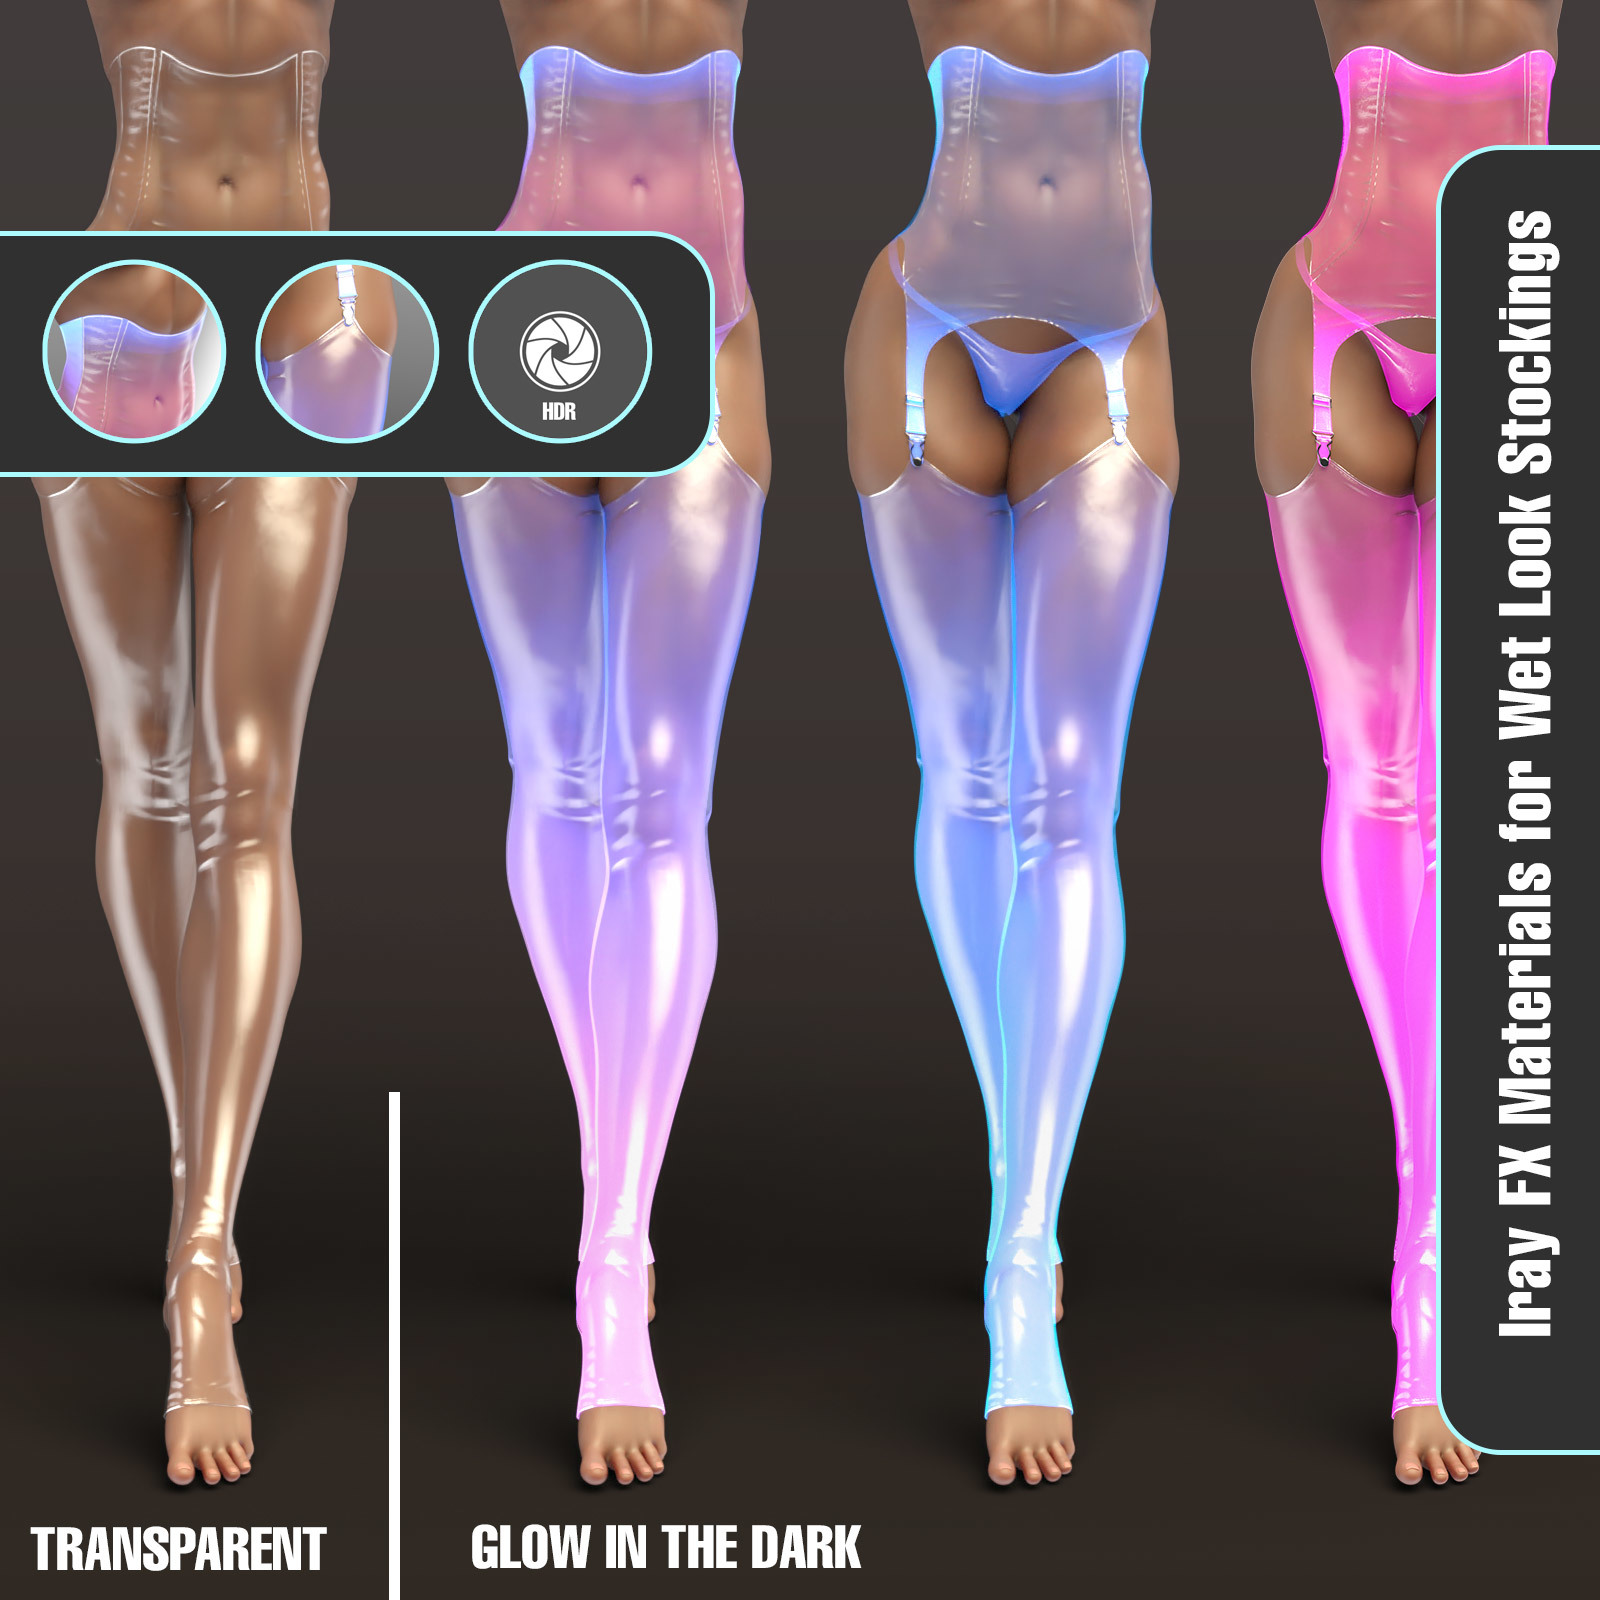 Iray FX Material Addon for Wet Look Stockings by benalive